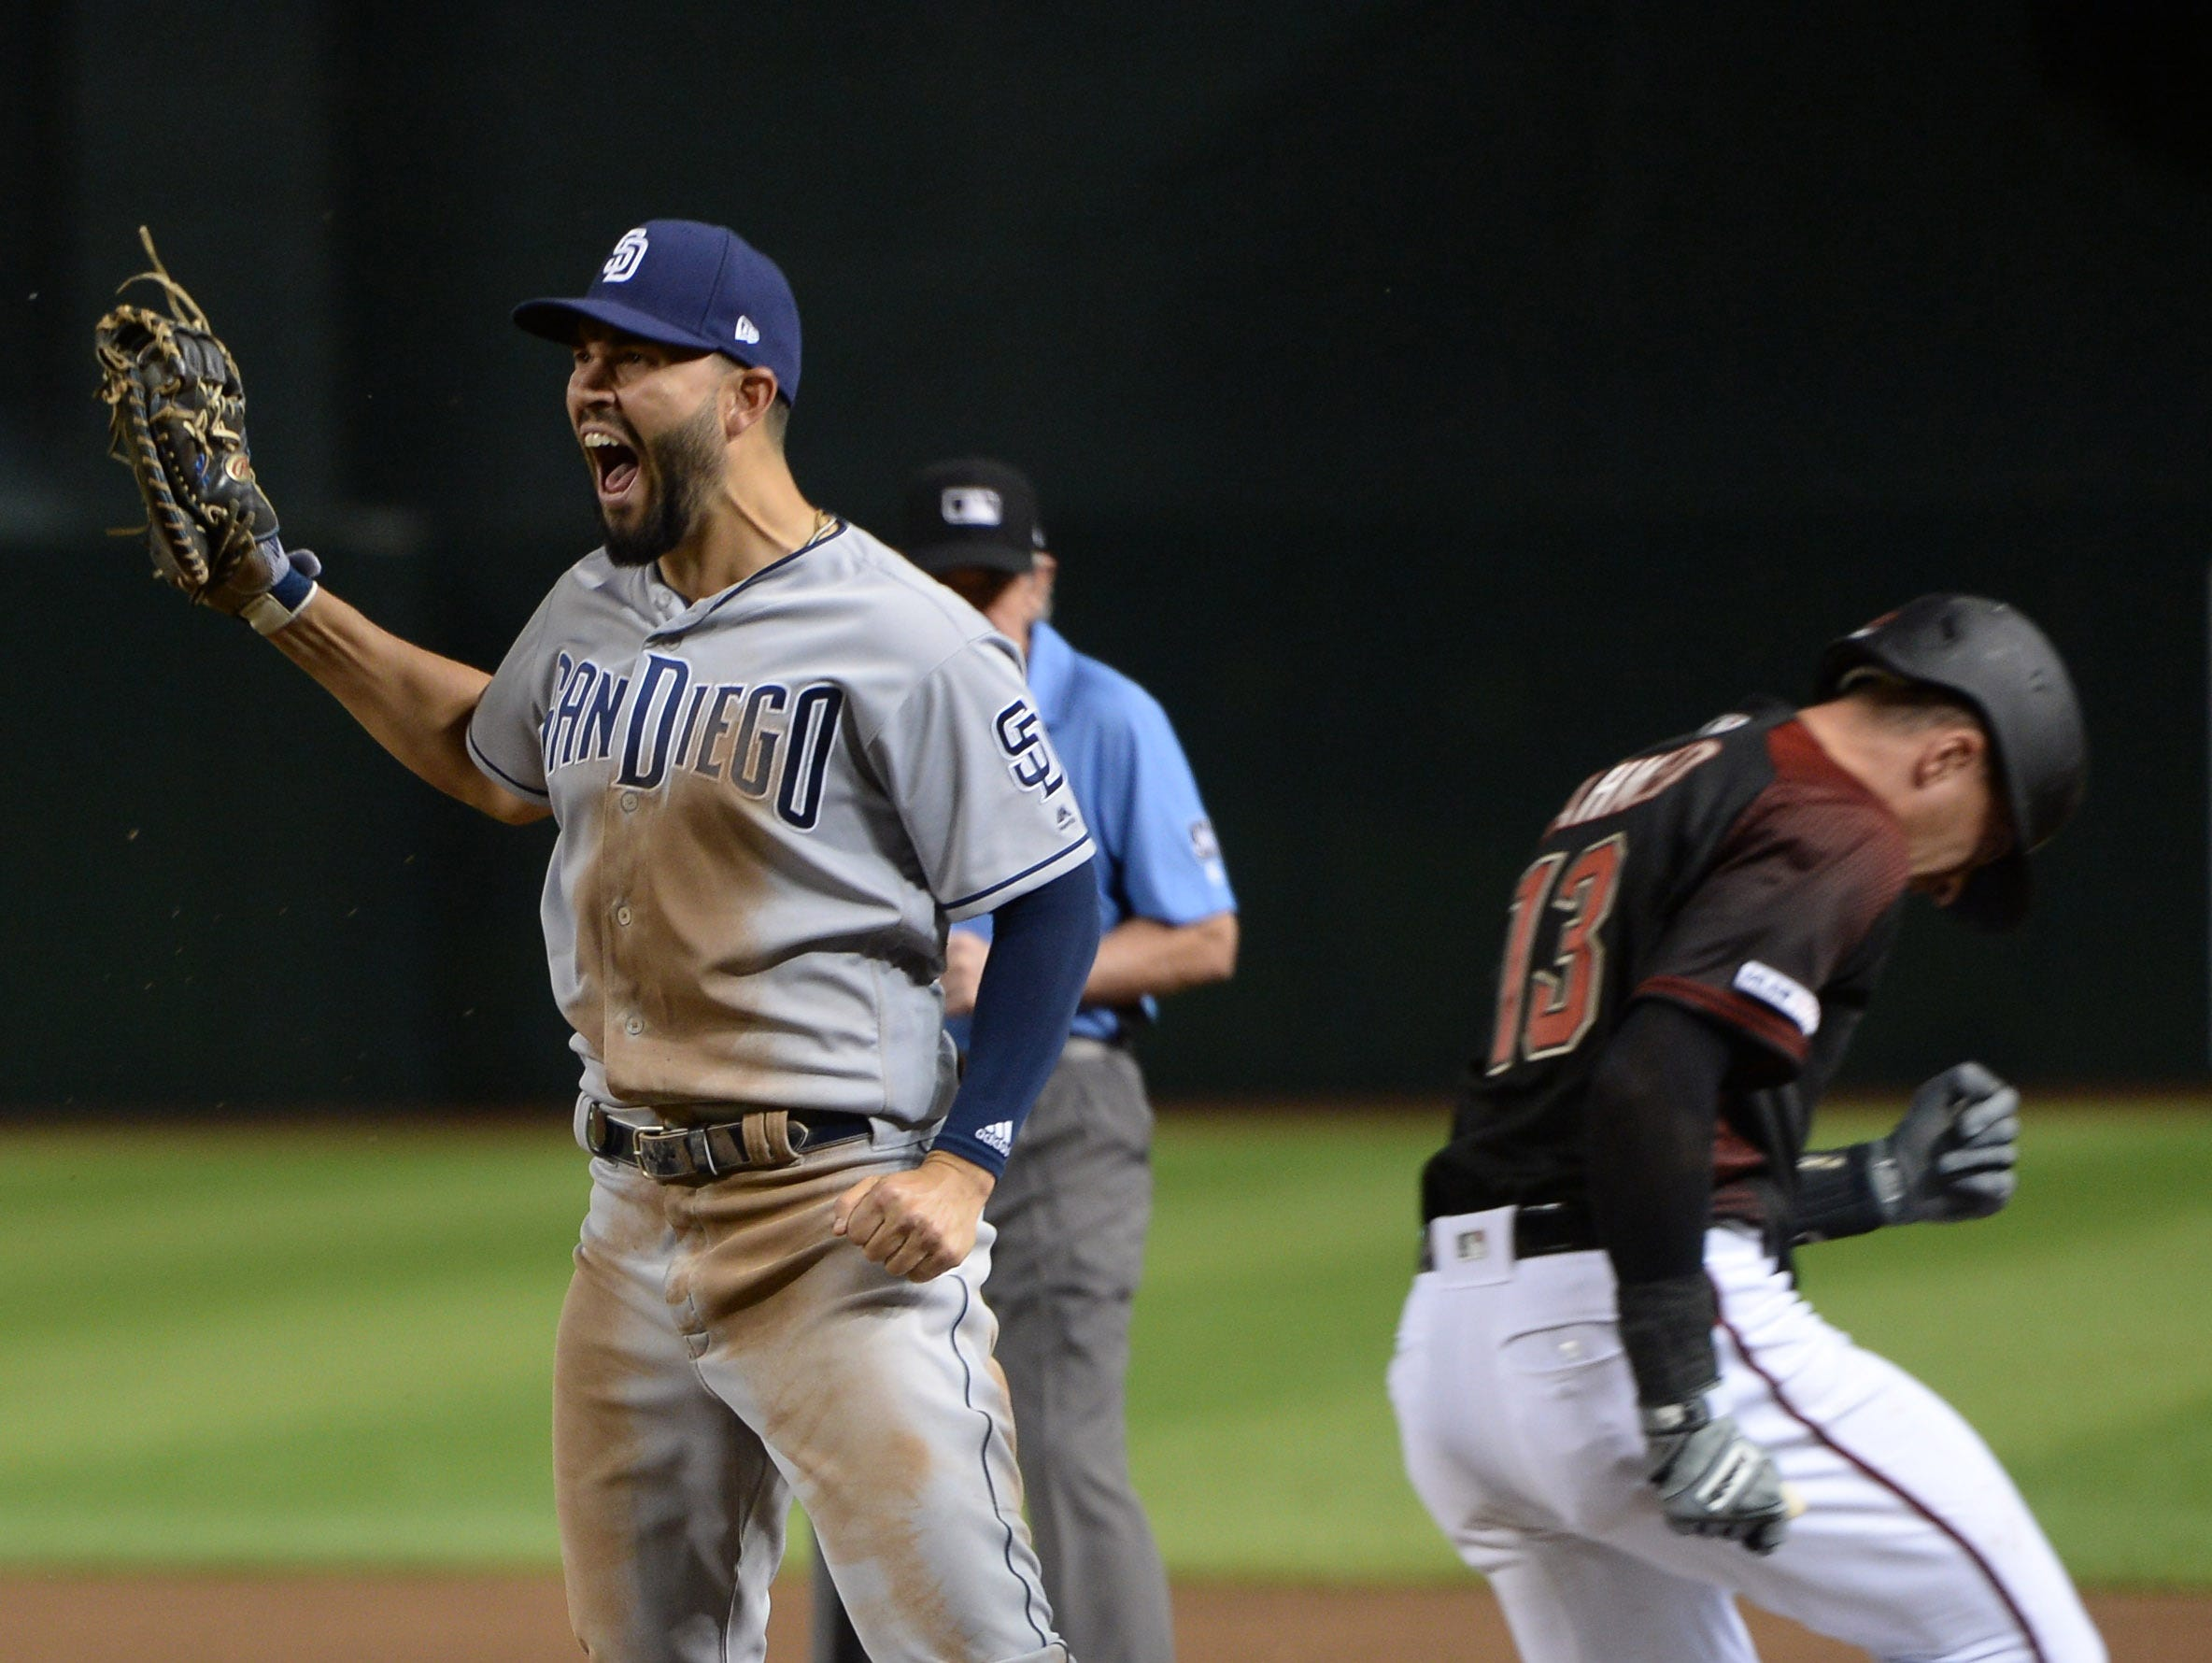 Apr 13, 2019; Phoenix, AZ, USA; San Diego Padres first baseman Eric Hosmer (30) reacts after forcing out Arizona Diamondbacks shortstop Nick Ahmed (13) on the back end of a double play during the seventh inning at Chase Field. Mandatory Credit: Joe Camporeale-USA TODAY Sports